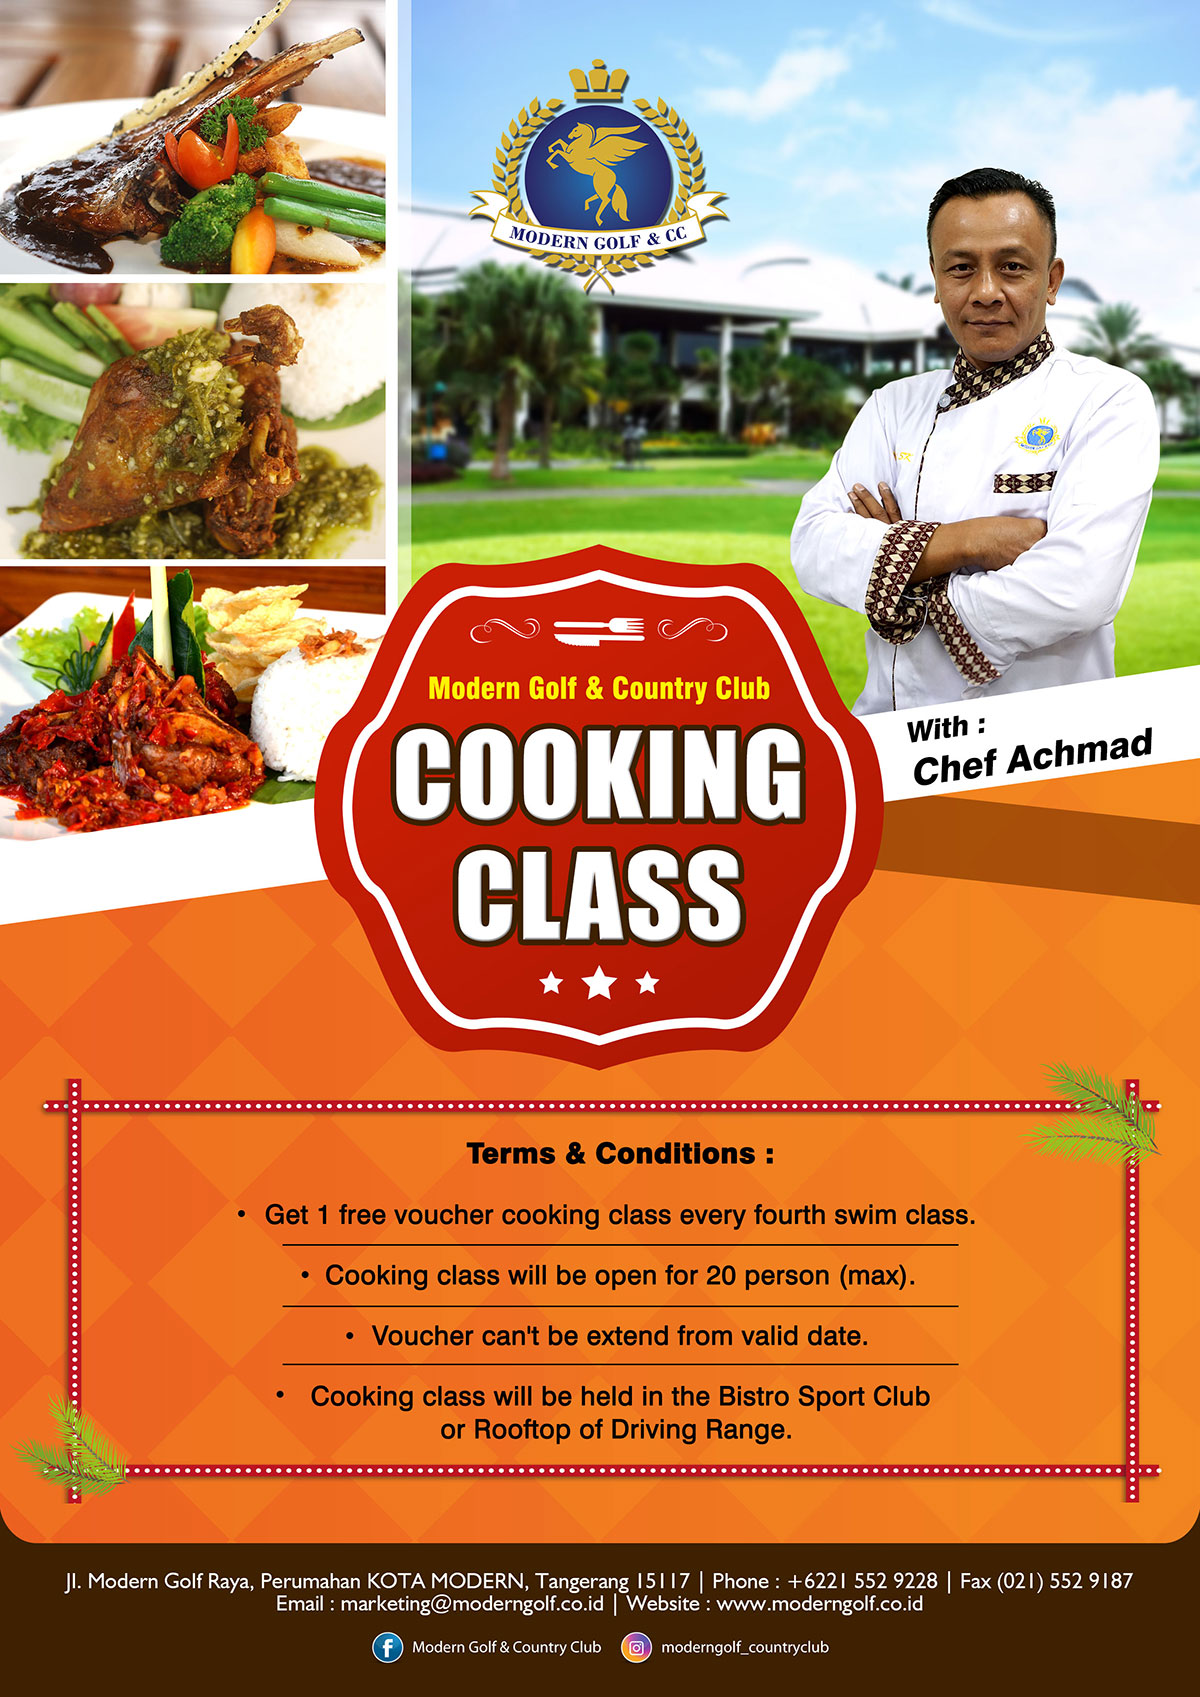 Cooking Clas Events